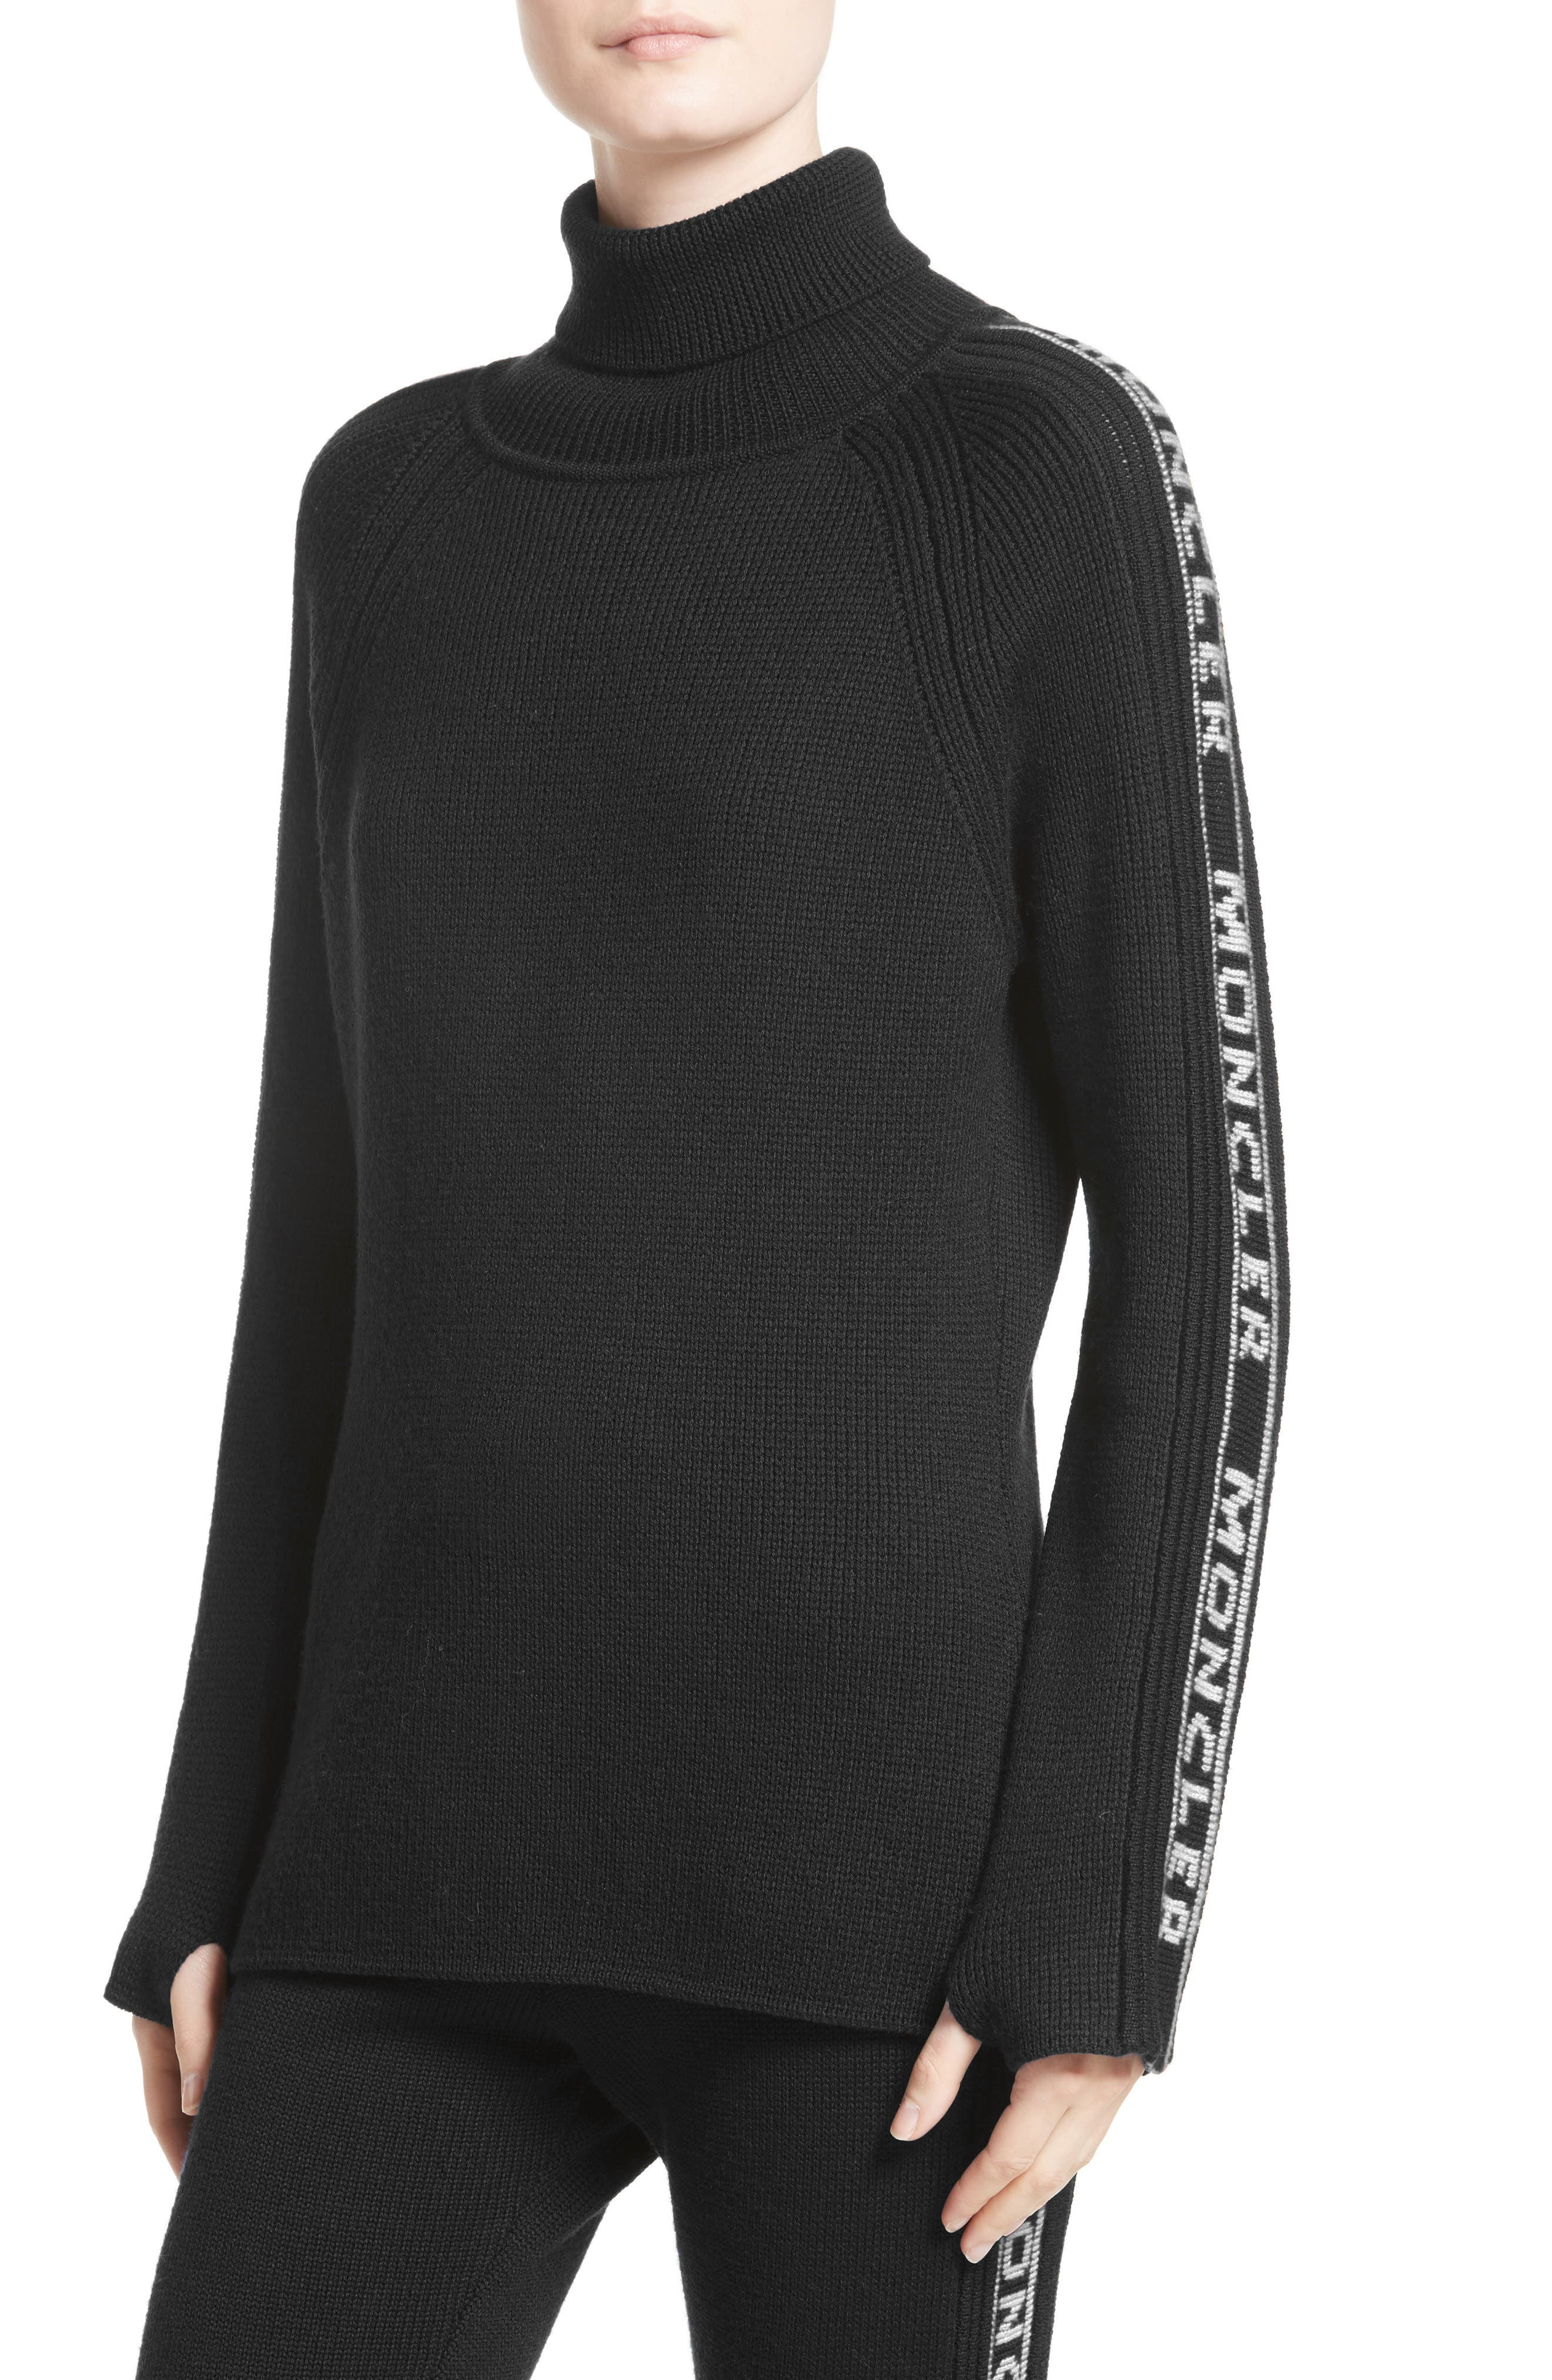 Main Image - Moncler Ciclista Tricot Wool Sweater